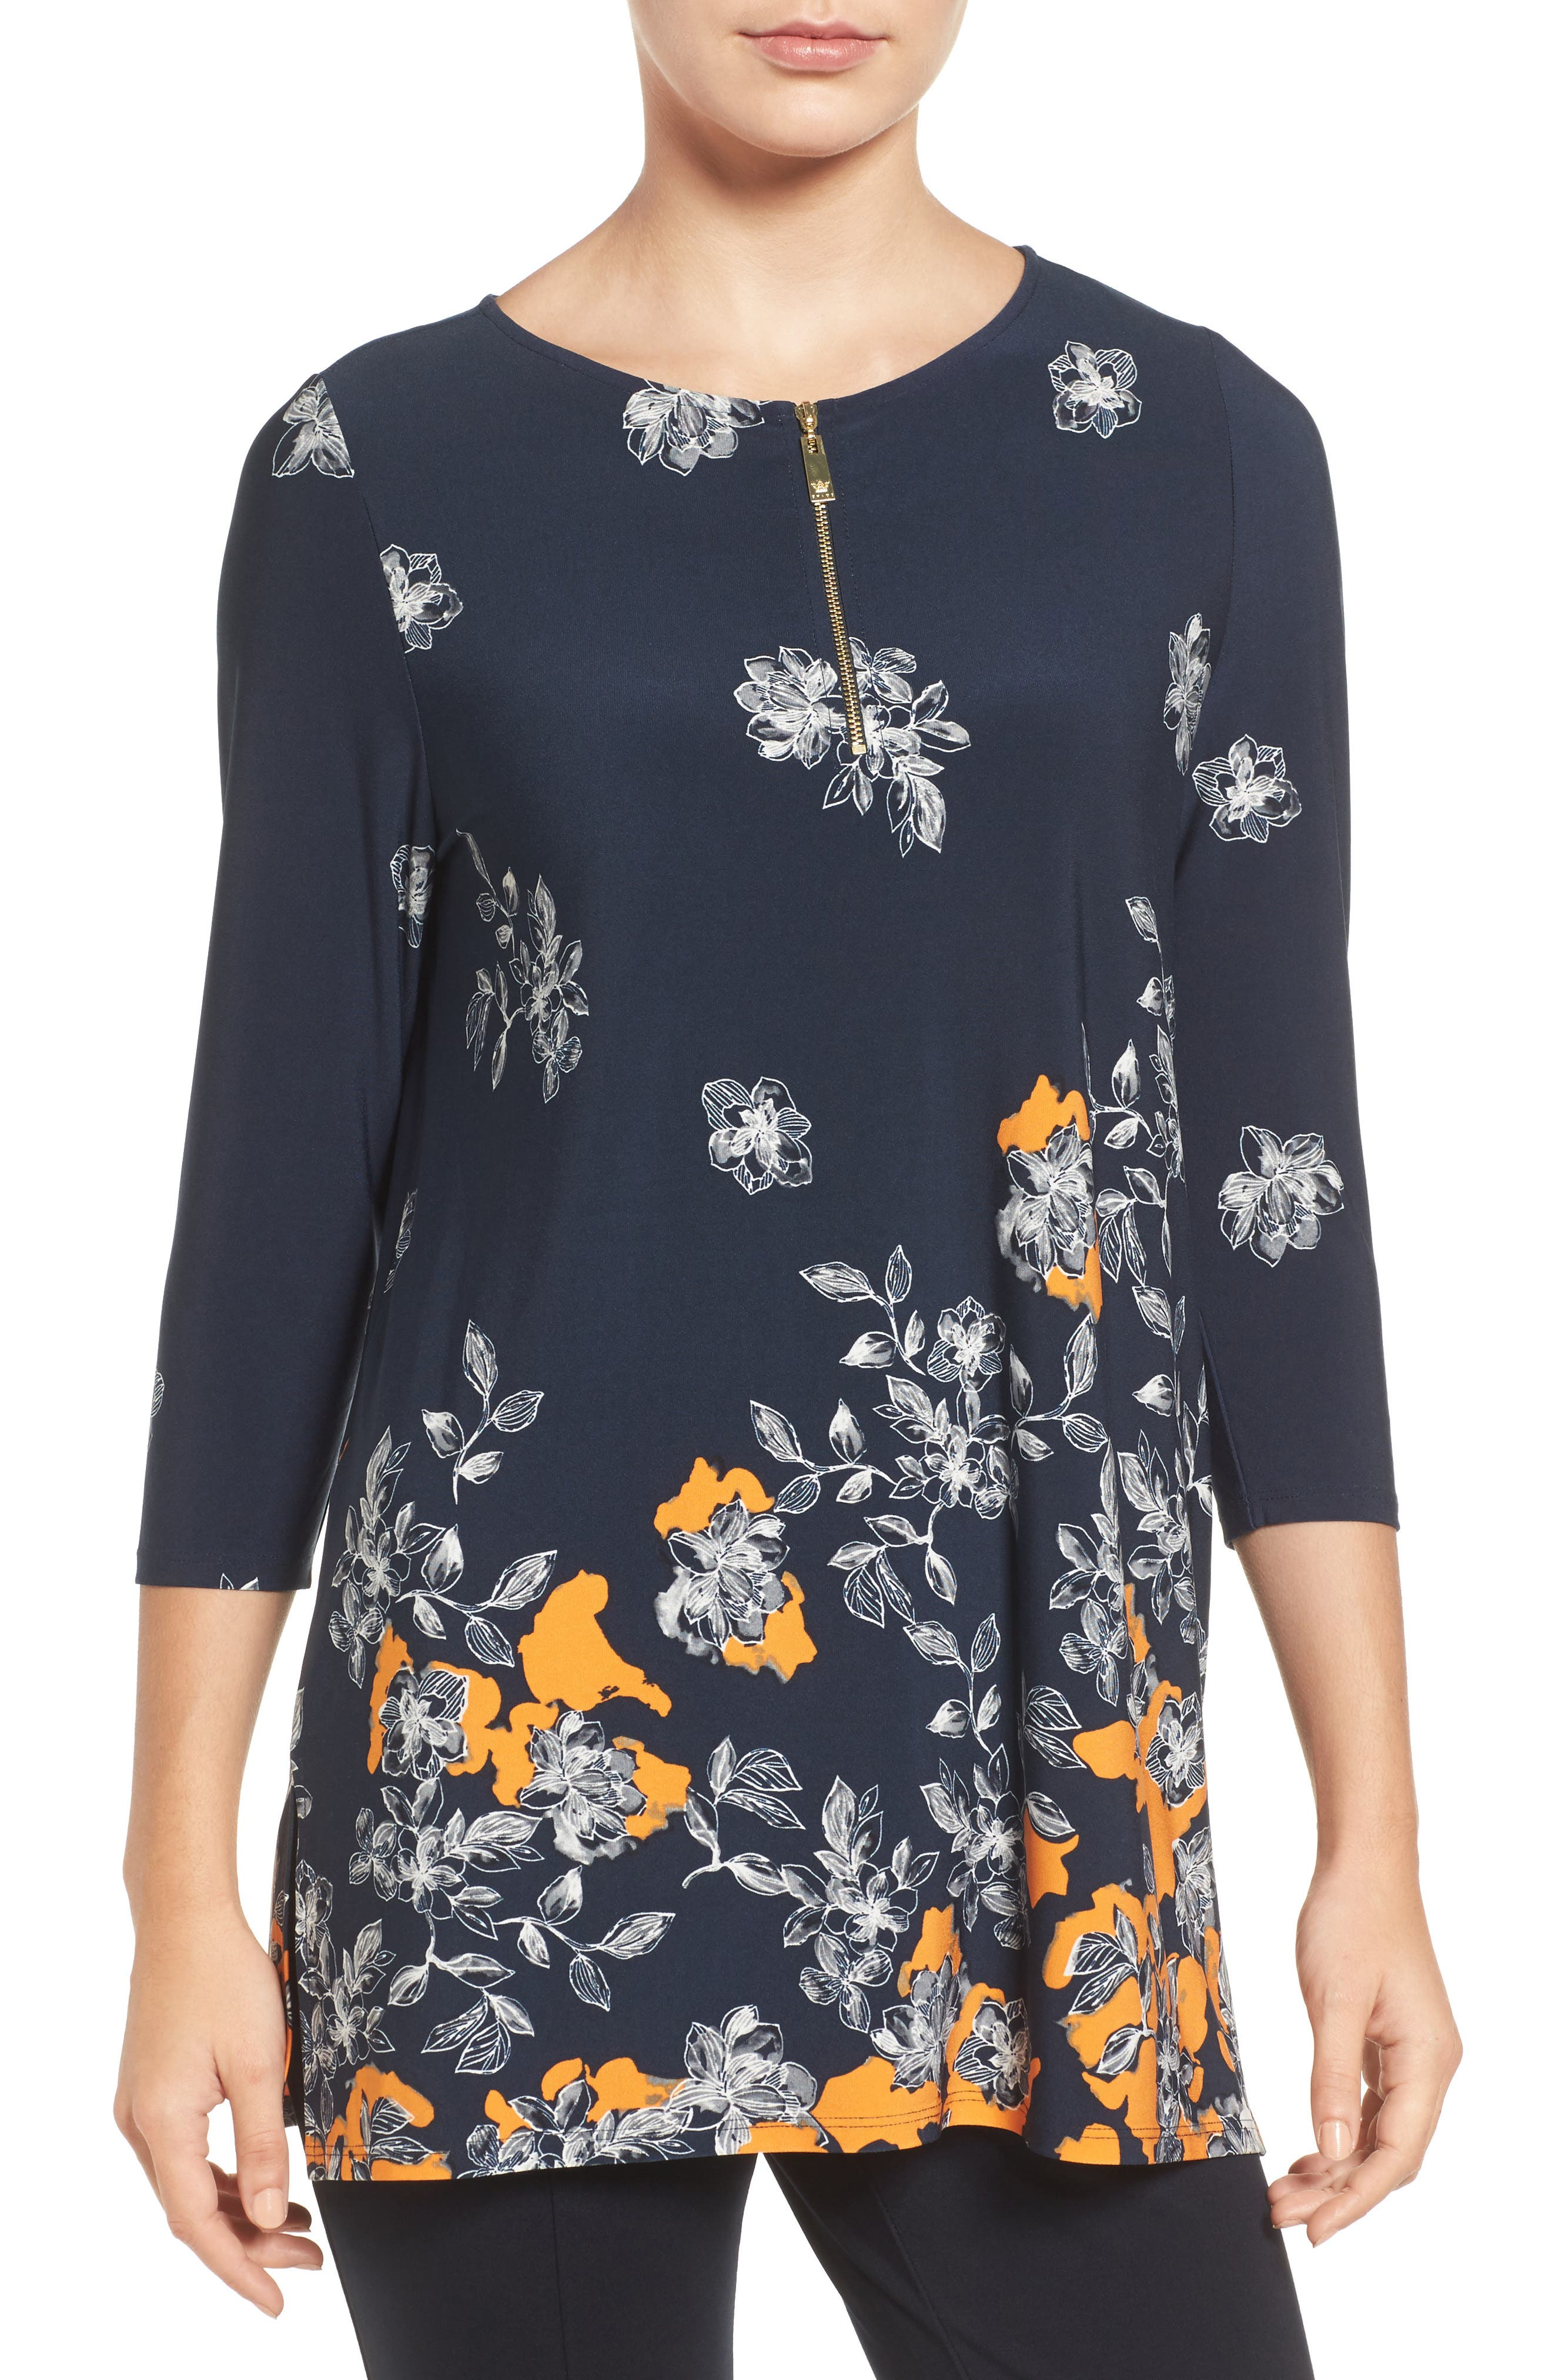 CHAUS Floral Border Print Top